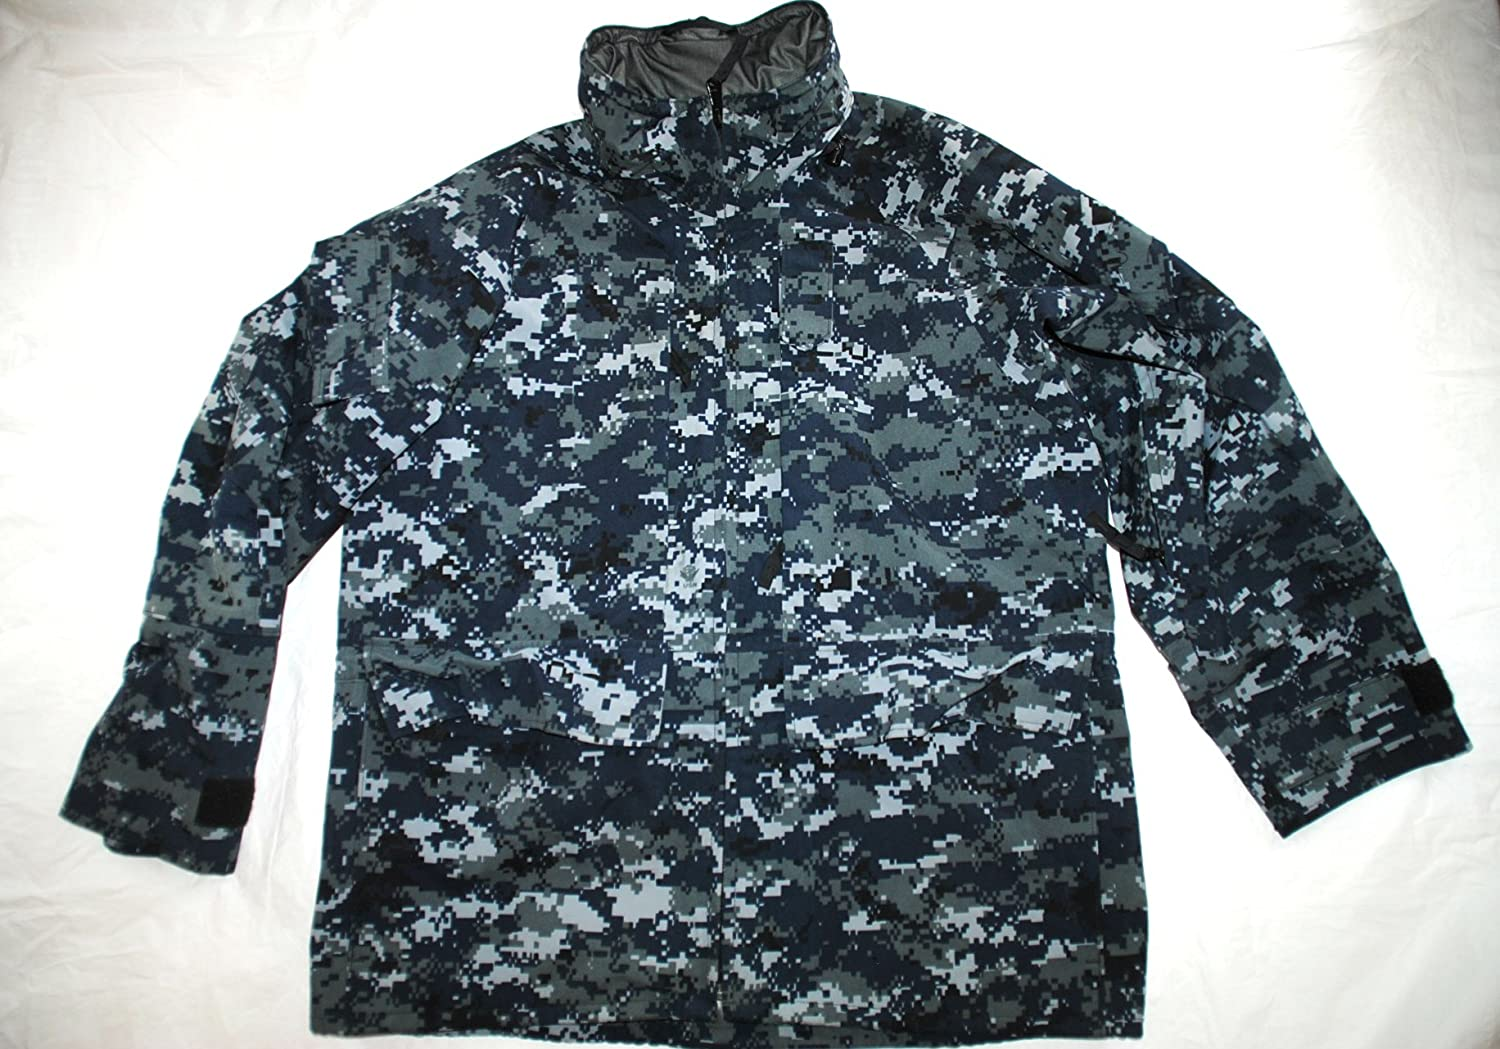 00b0a90616274 Amazon.com : Genuine Us Navy Nwu Ecwcs Gen II Cold/Wet Weather Gore Tex  Parka - Medium Short : Everything Else